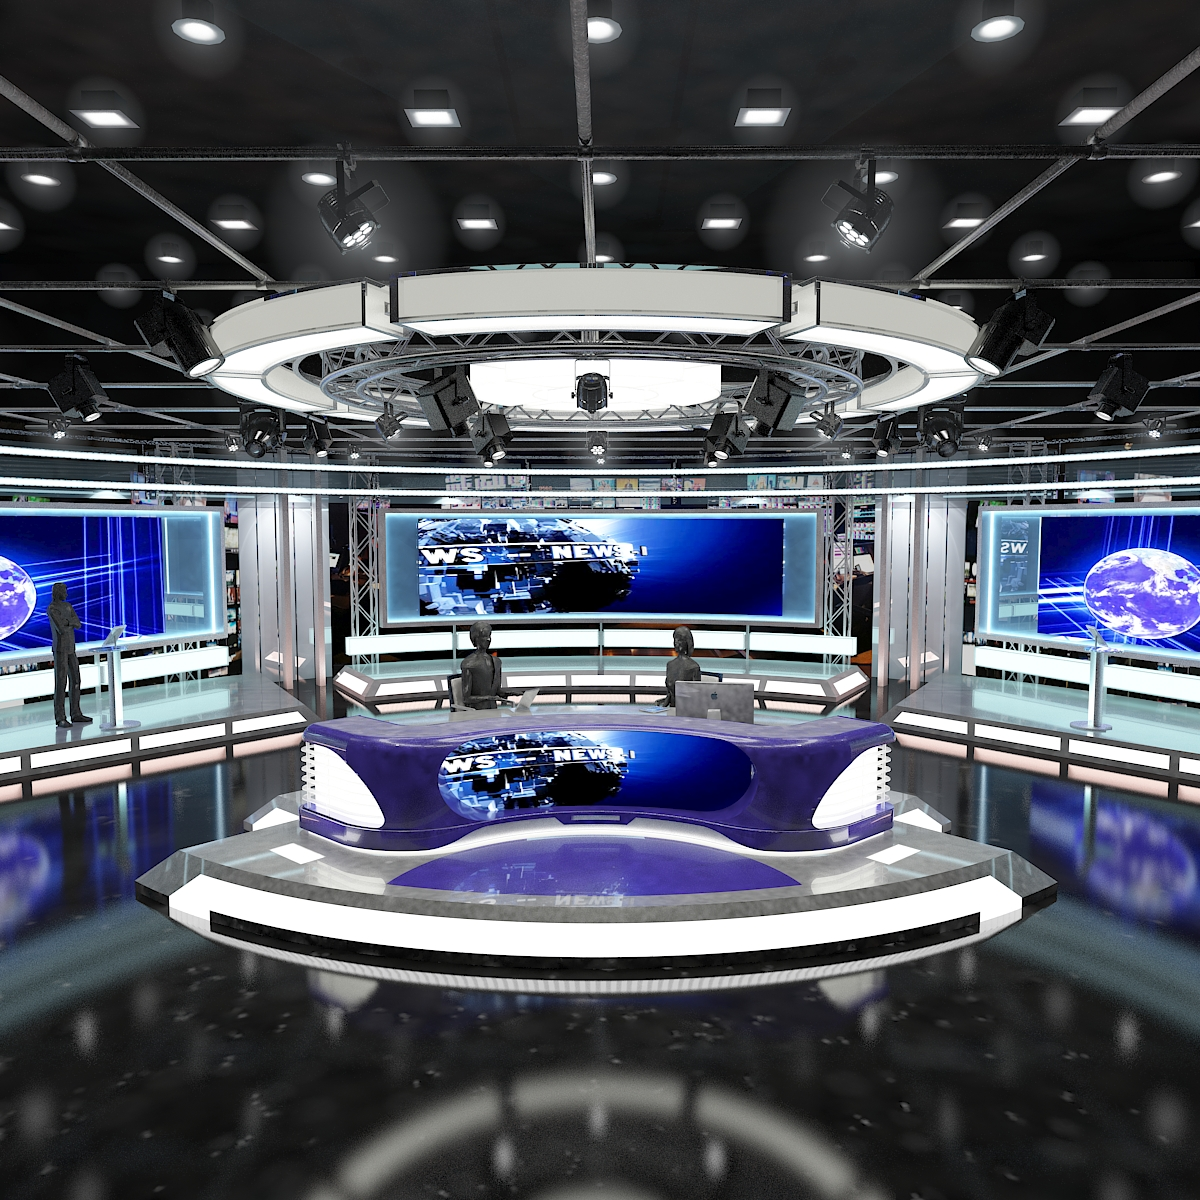 virtual tv studio news set 1 3d model max dxf fbx c4d obj 223284